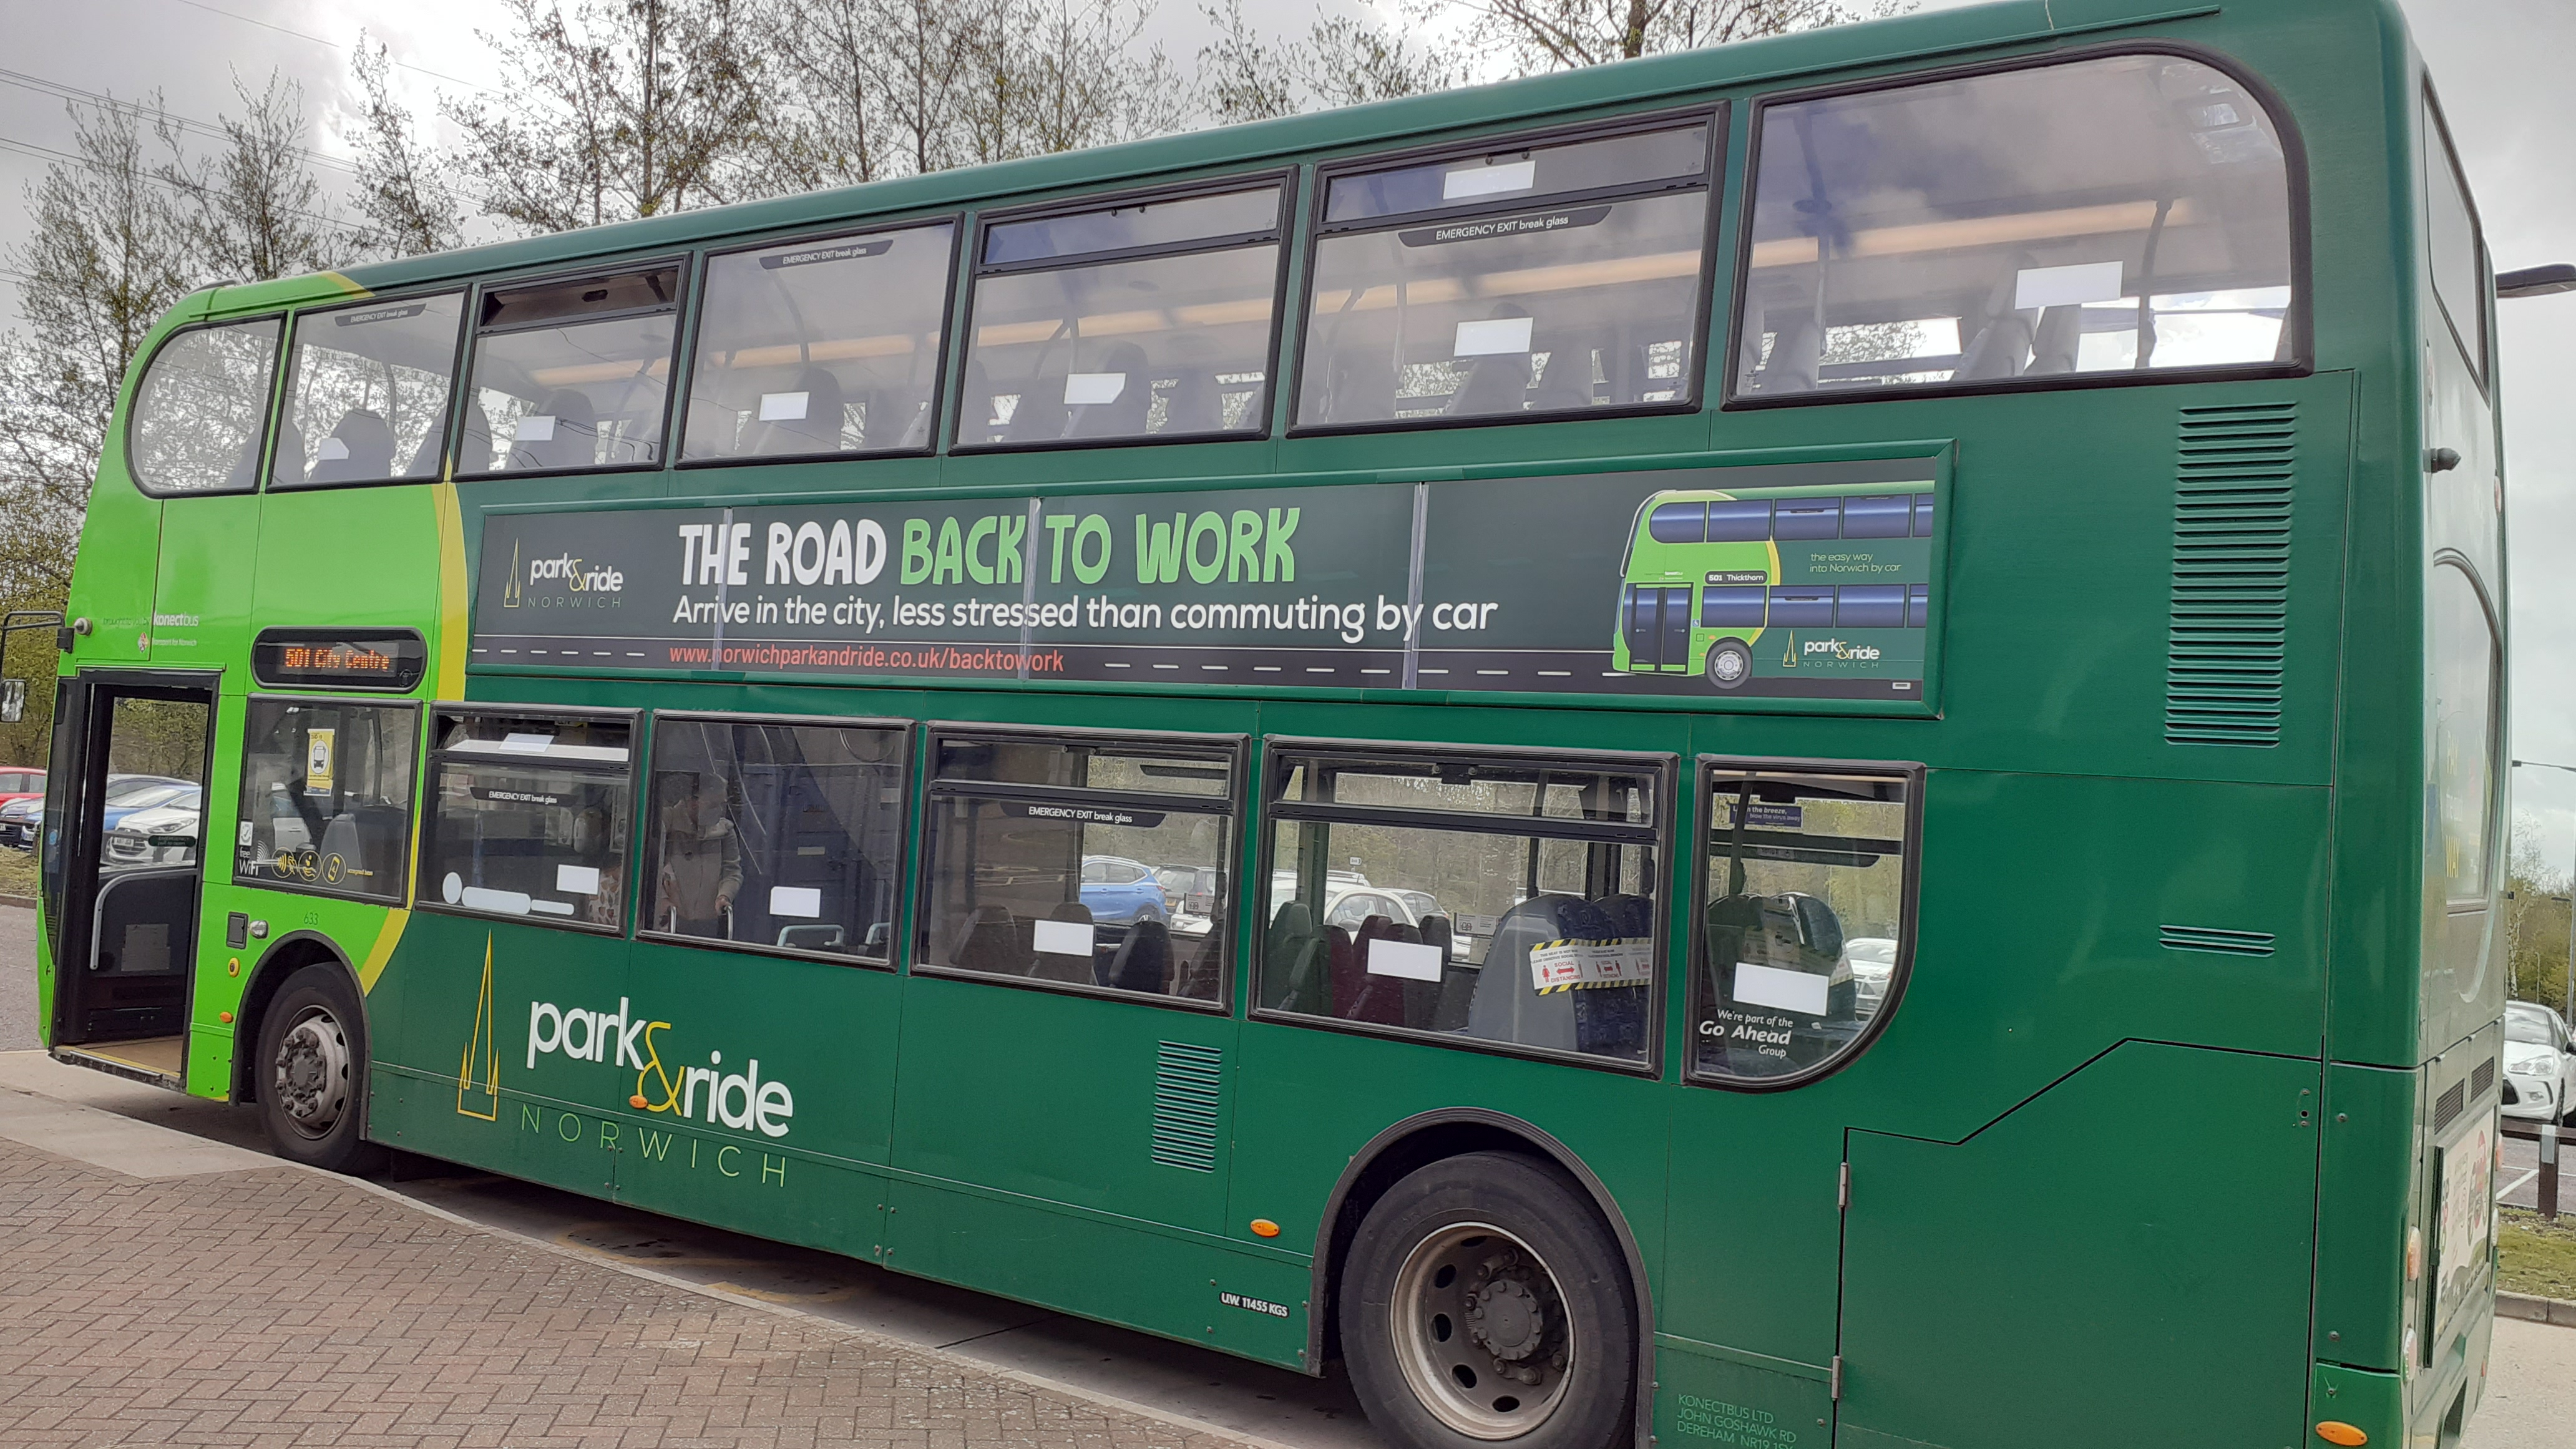 Image of a Park and Ride bus with advertising